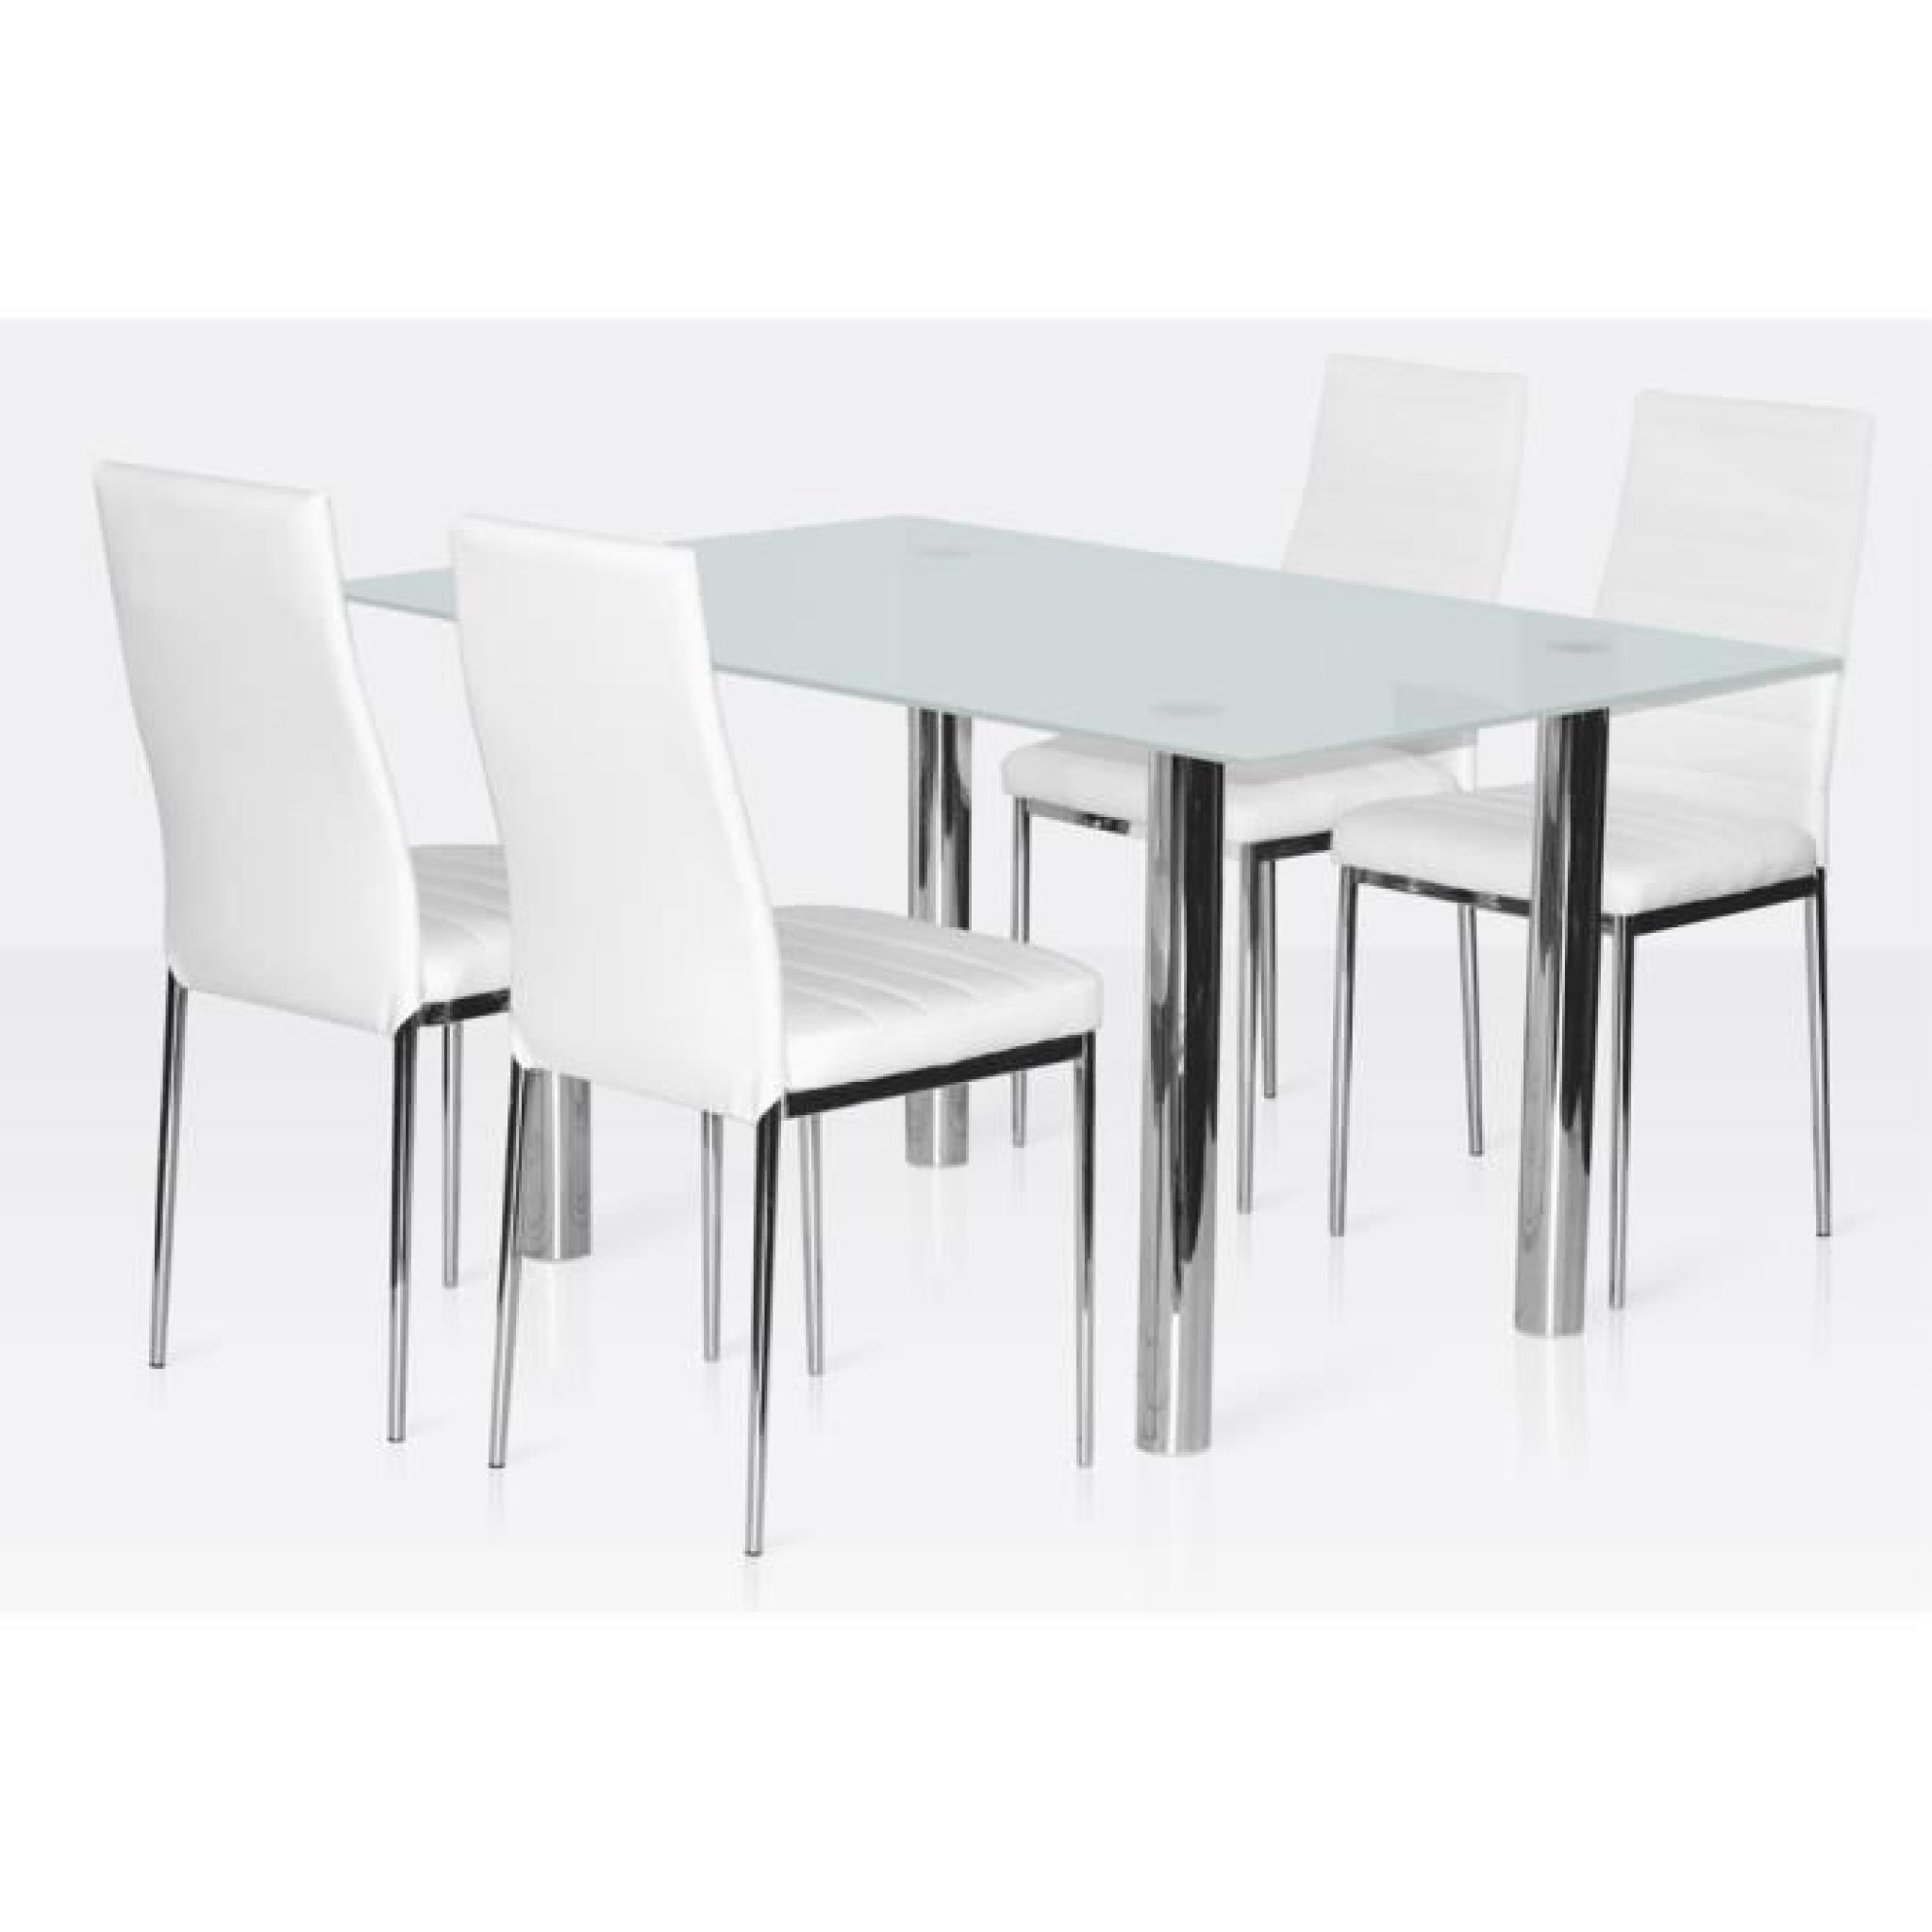 Ensemble table et chaise salle a manger ensemble table for Chaise table salle a manger